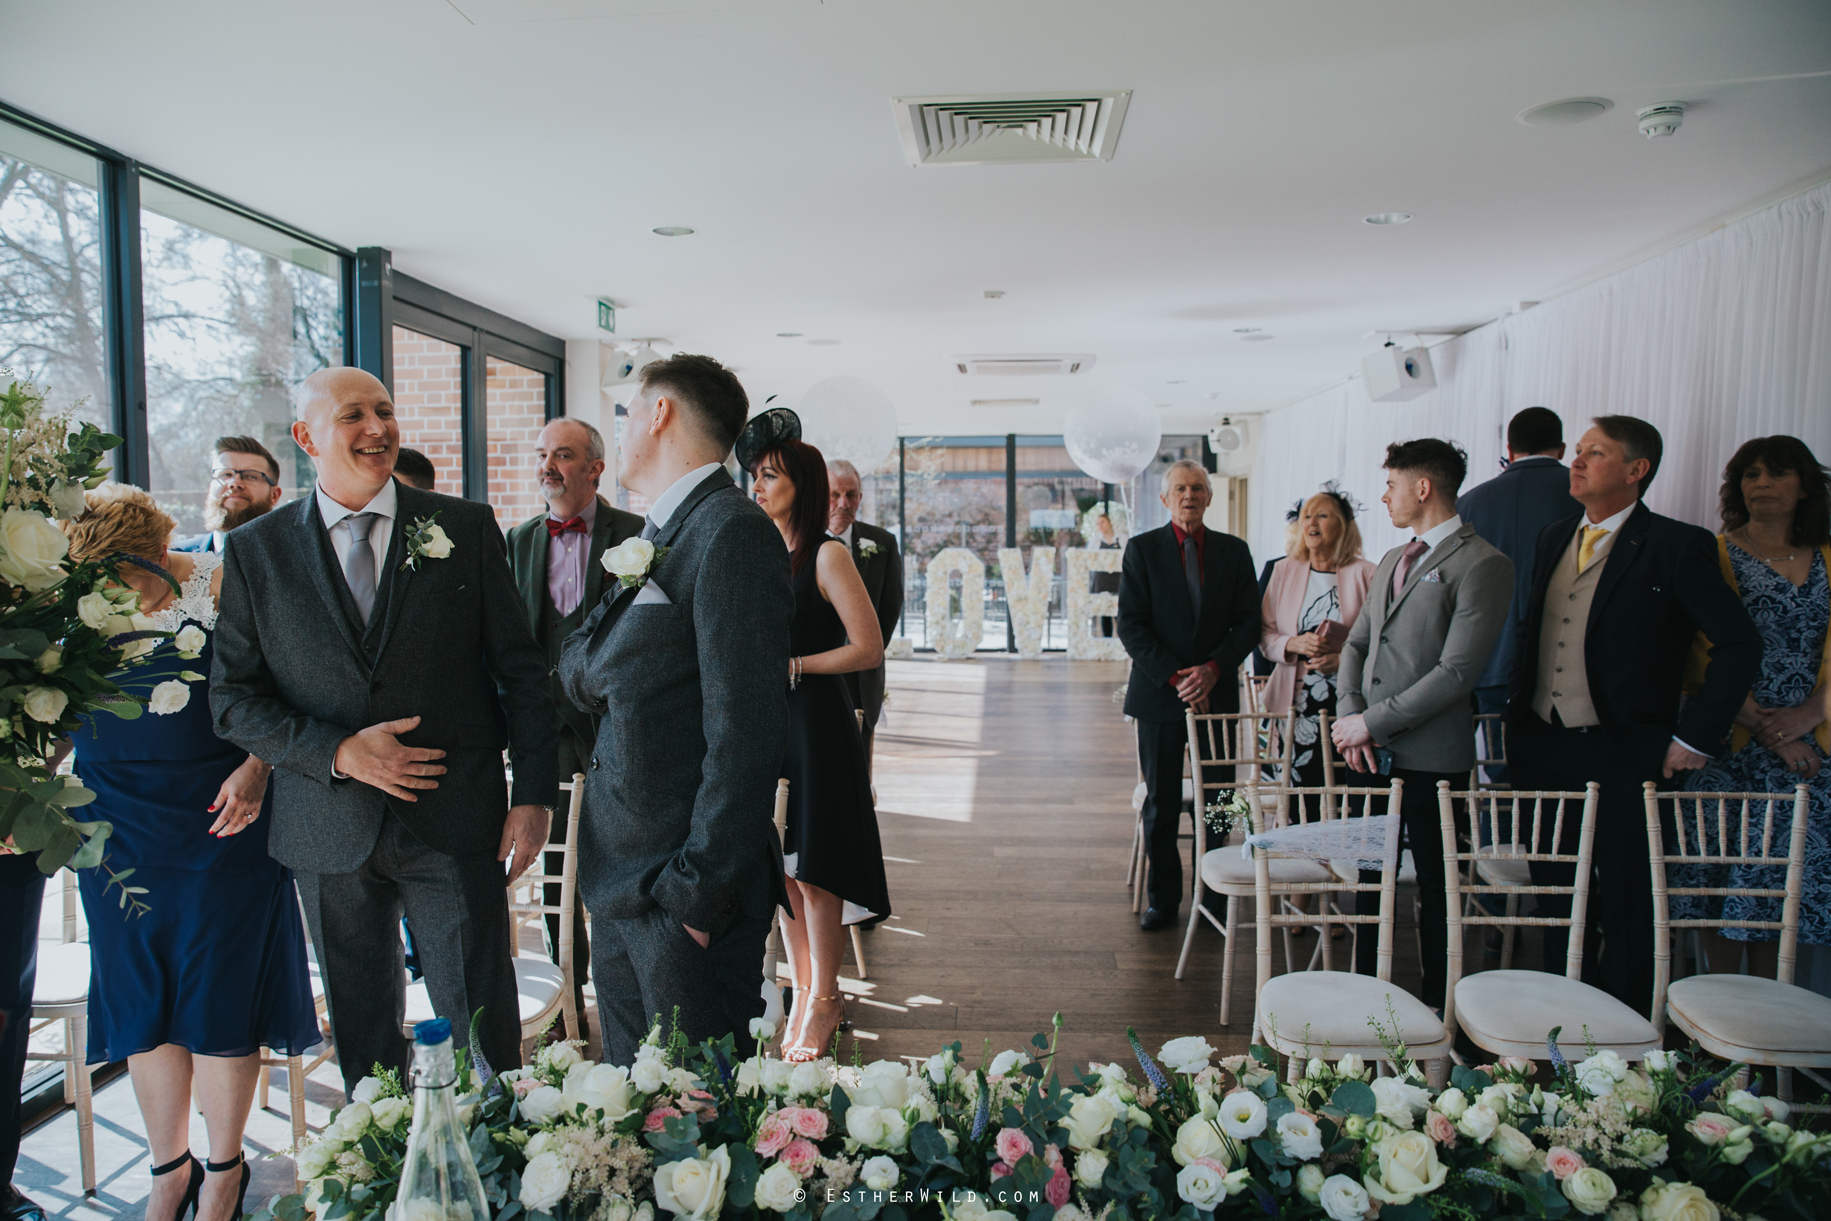 Norfolk_Mead_Hotel_Norwich_Wedding_Copyright_Esther_Wild_Photographer_IMG_1193.jpg